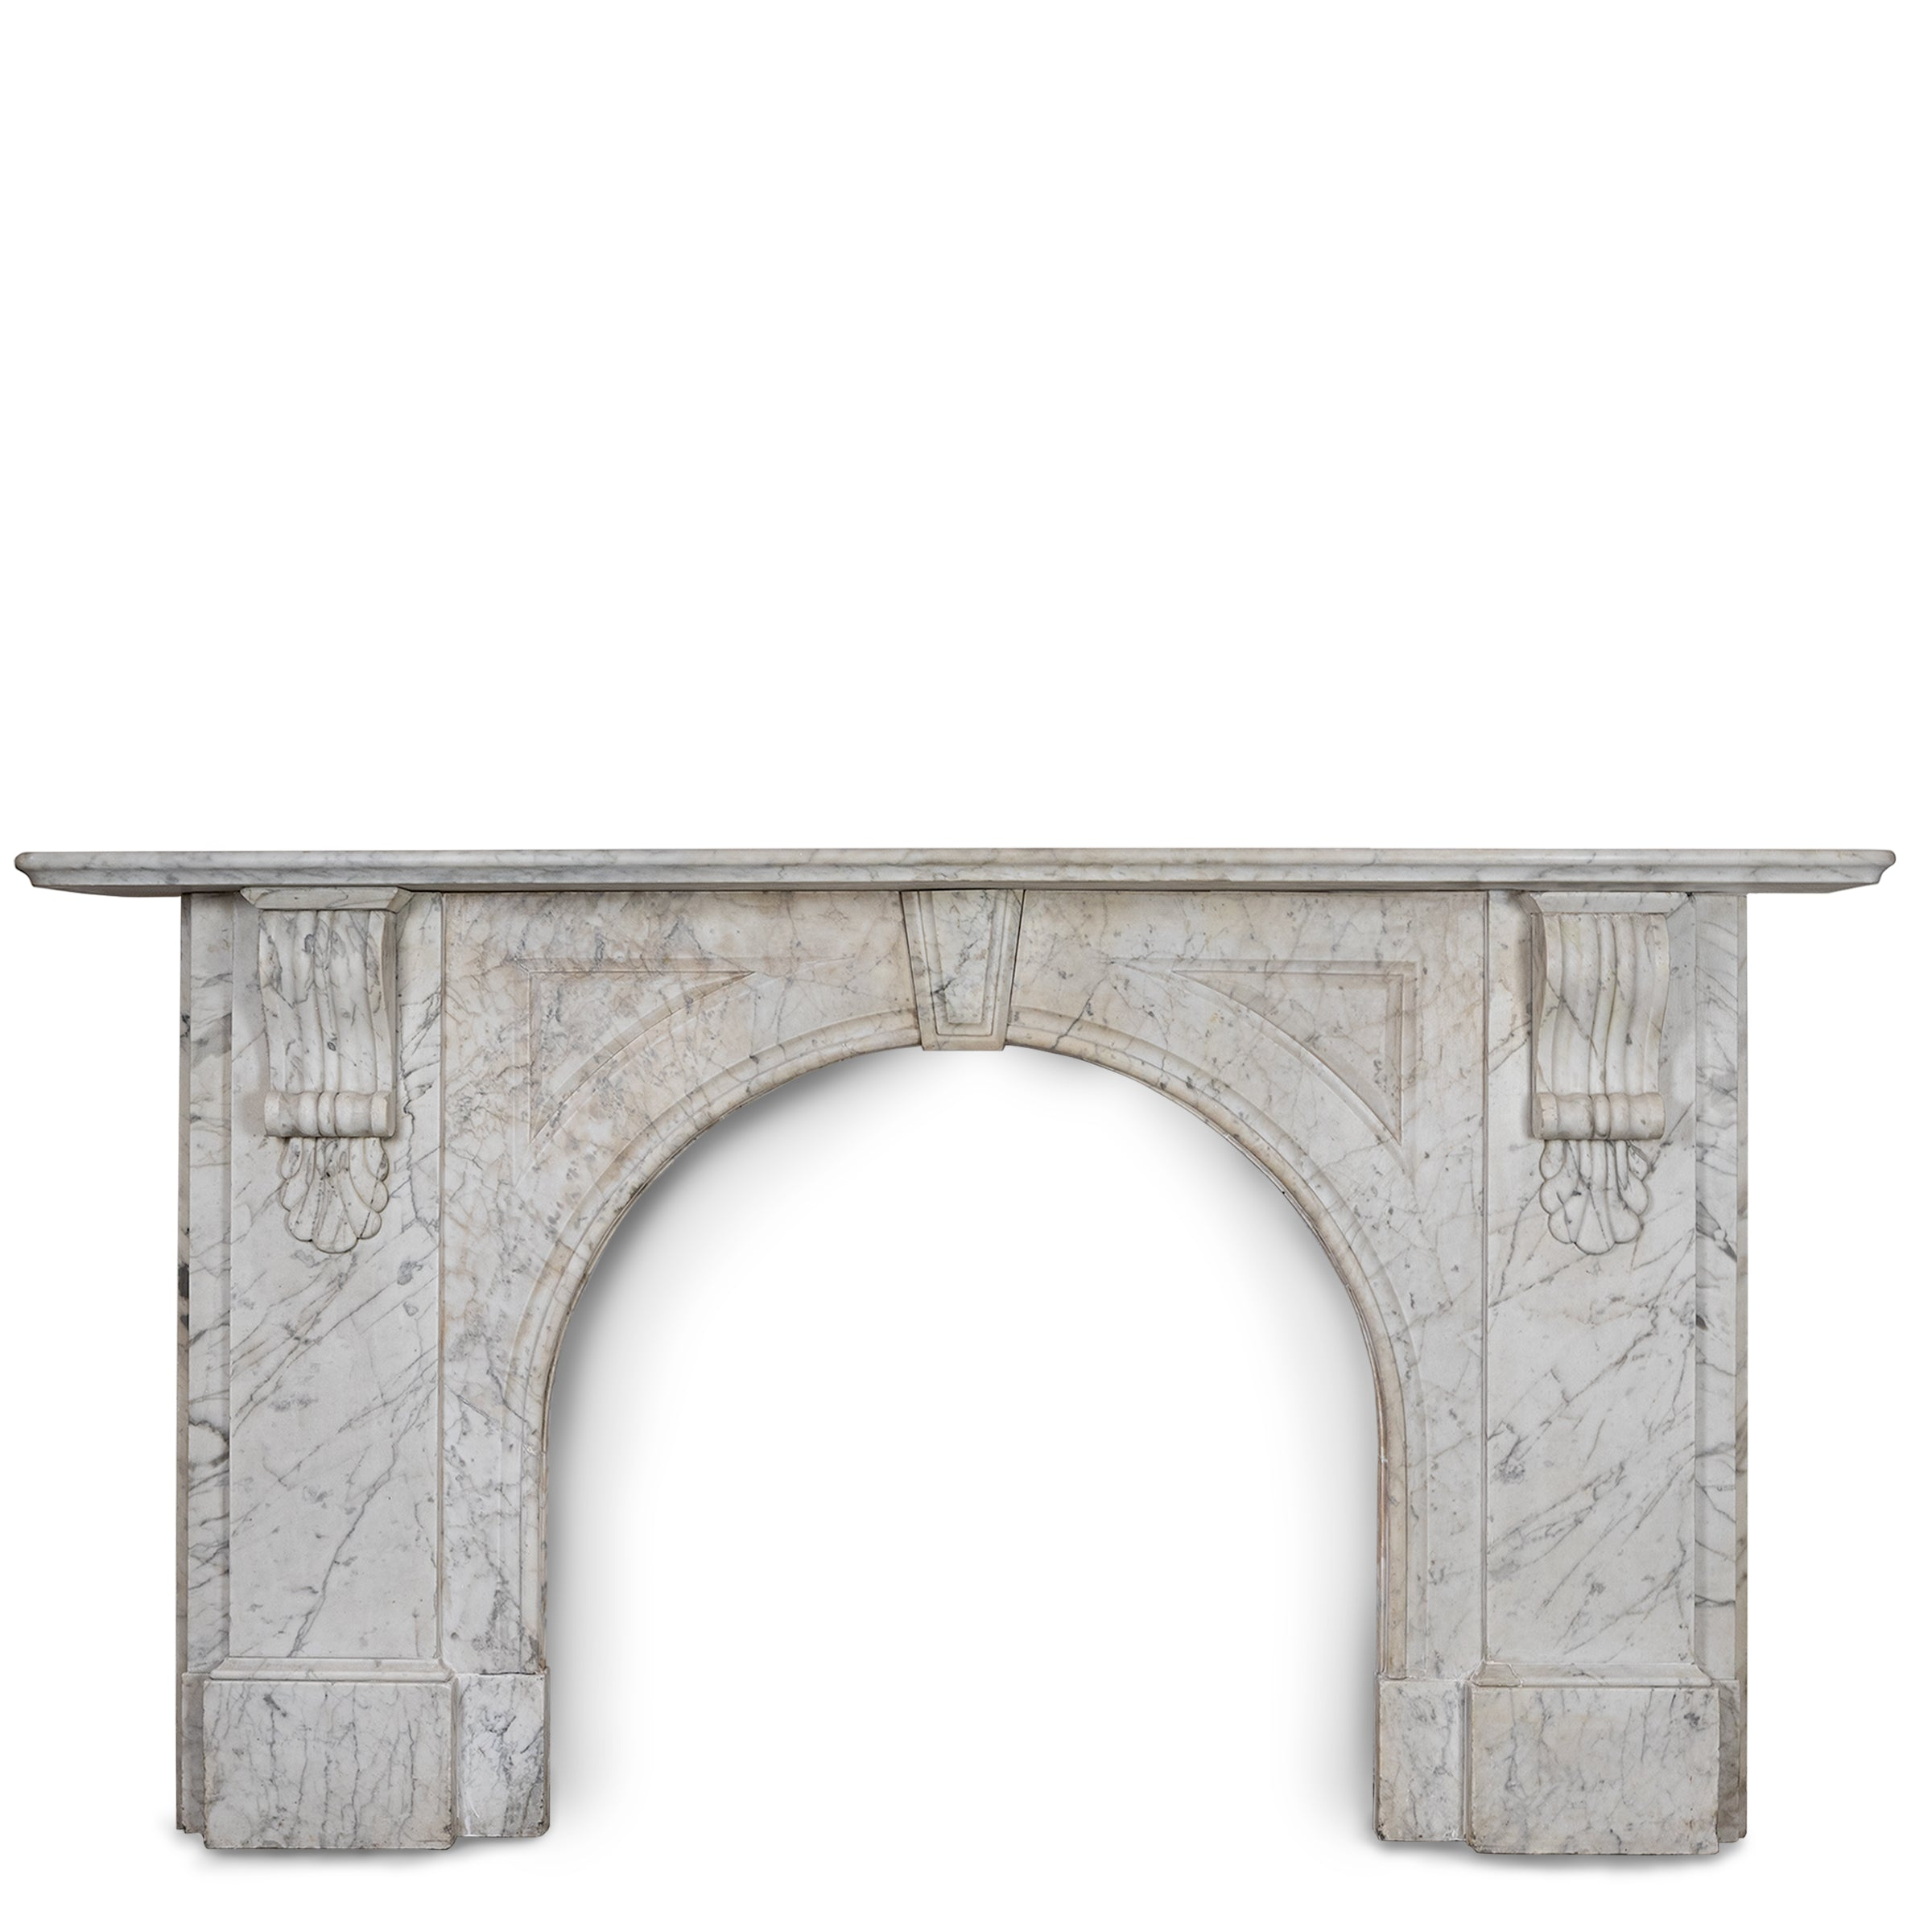 Large Antique Victorian Carrara Marble Arched Chimneypiece